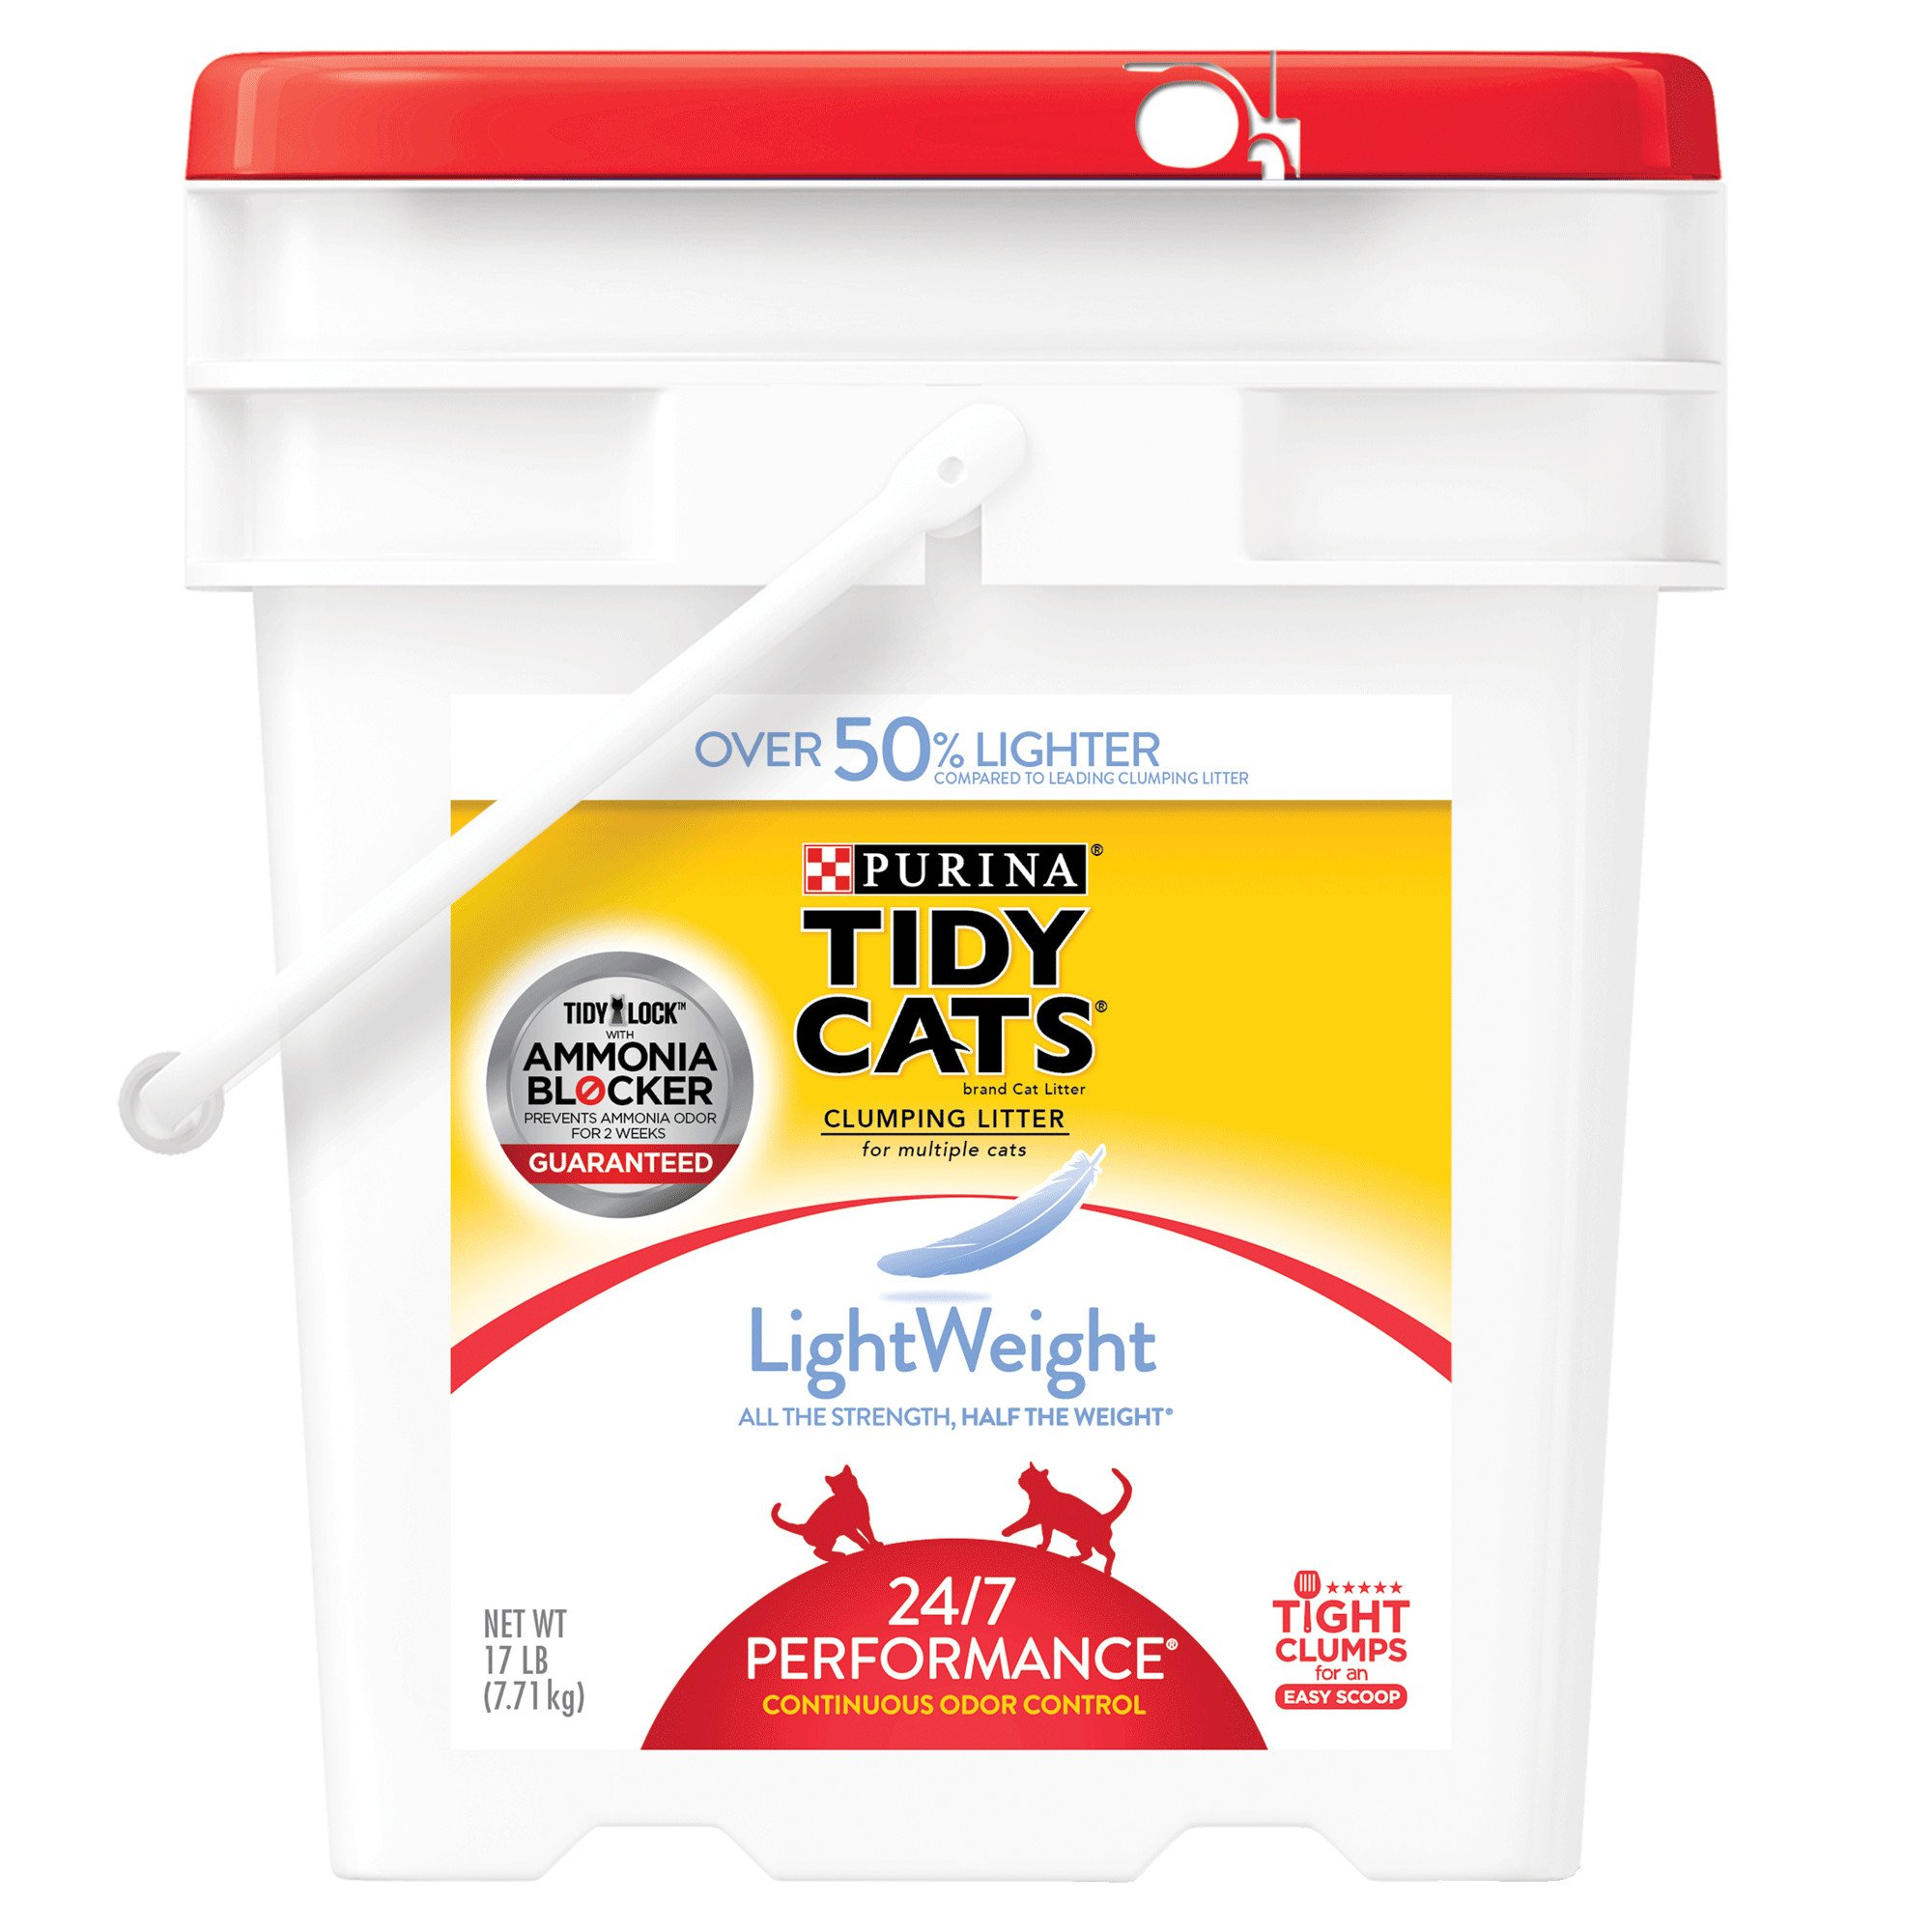 Purina Tidy Cats LightWeight Clumping Litter 24/7 Performance for Multiple Cats